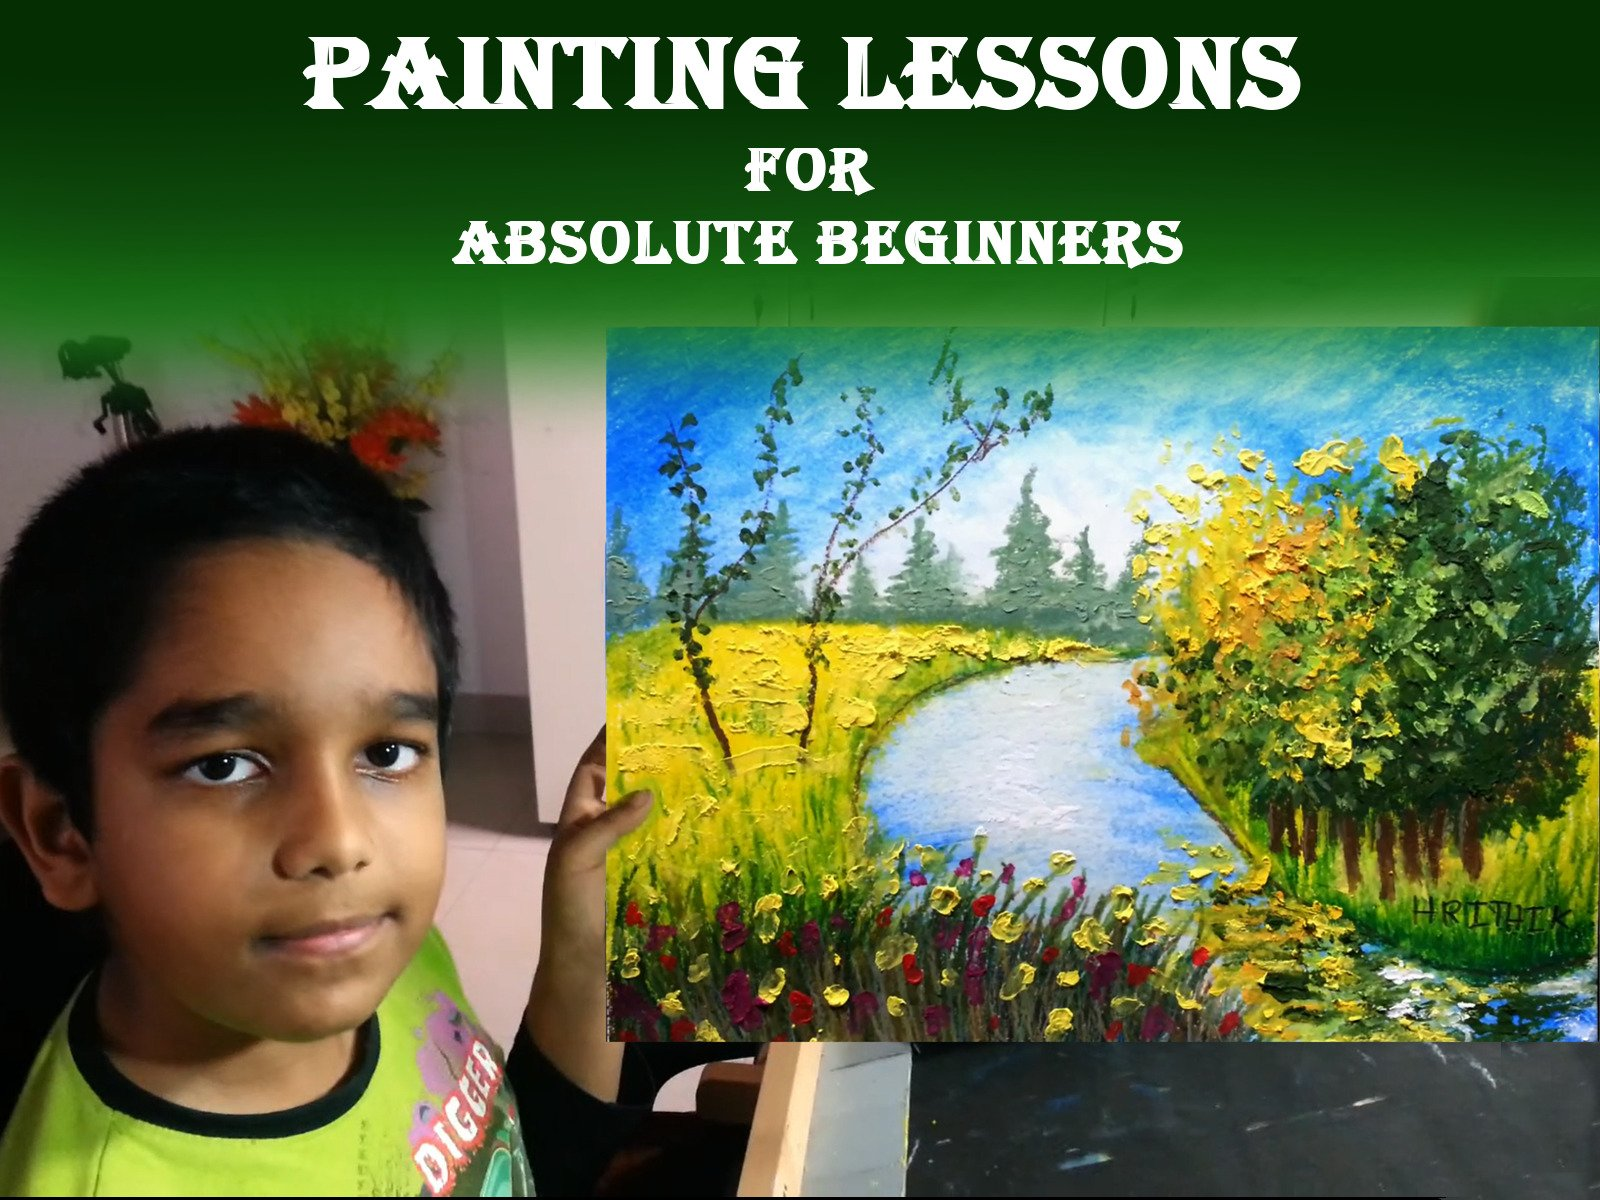 Painting Lessons For Absolute Beginners - Season 1